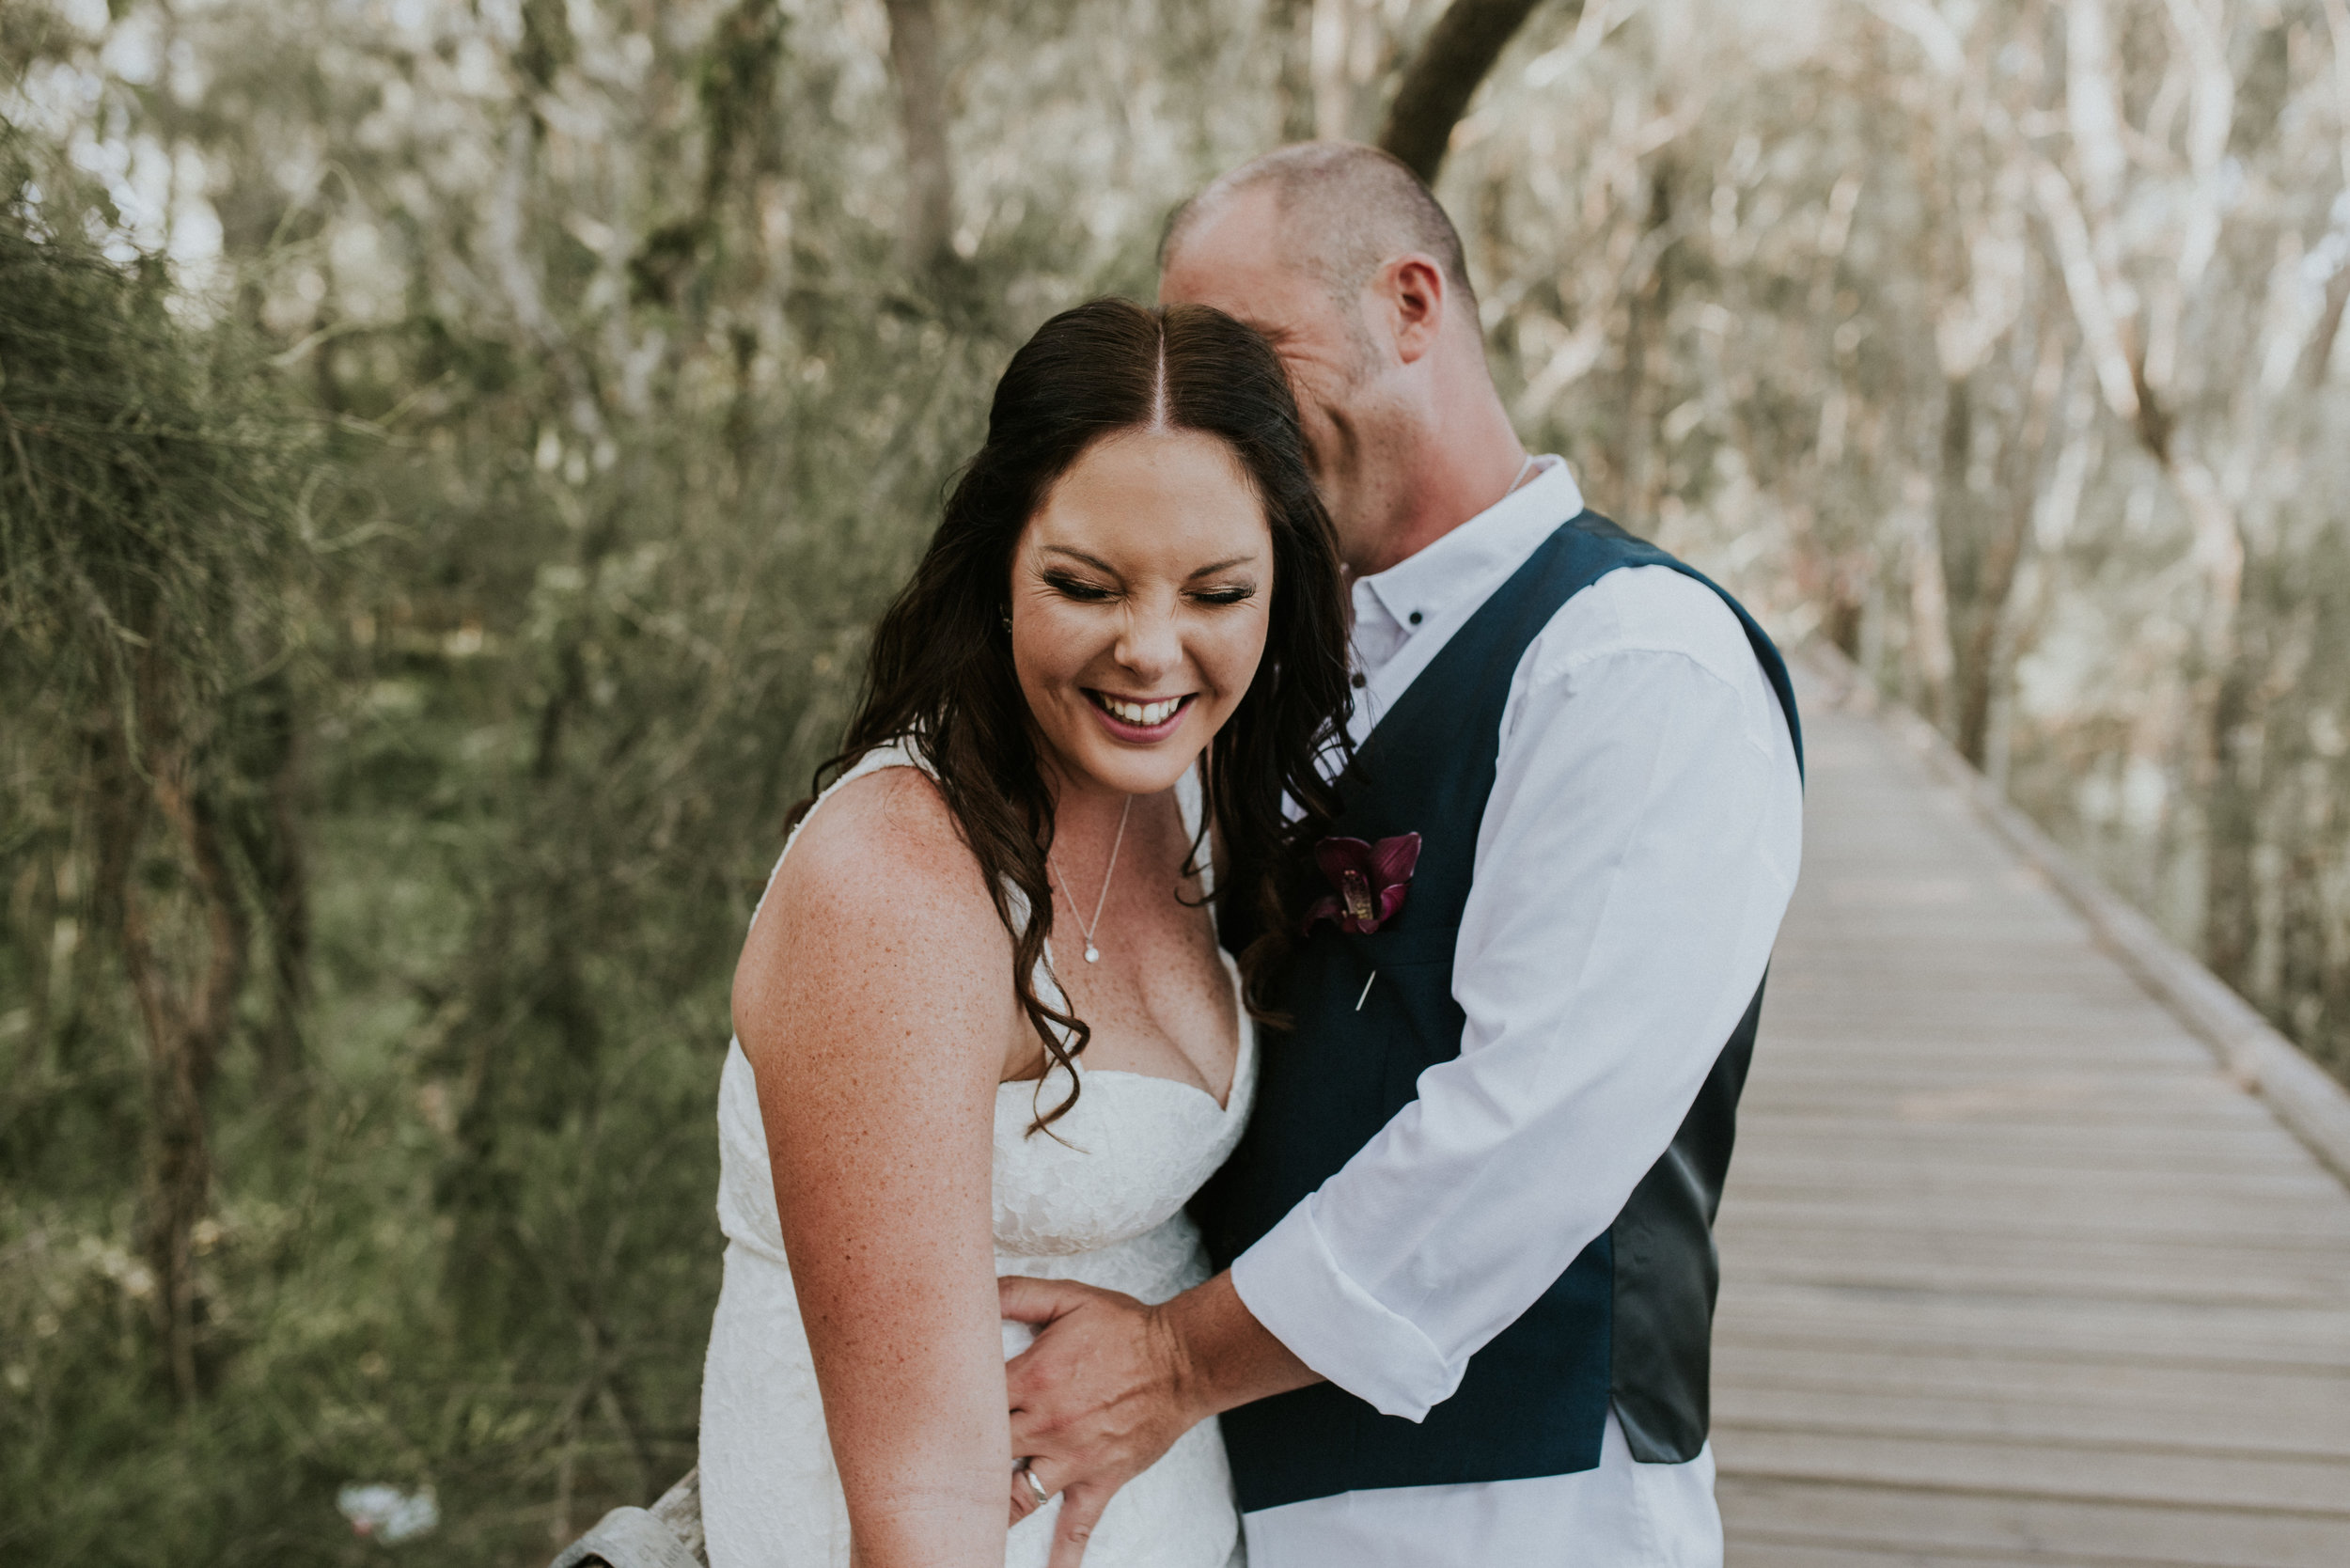 Bec & Chris - Lagoon Seafood Restaurant Wollongong Intimate Wedding    3rd March 2018